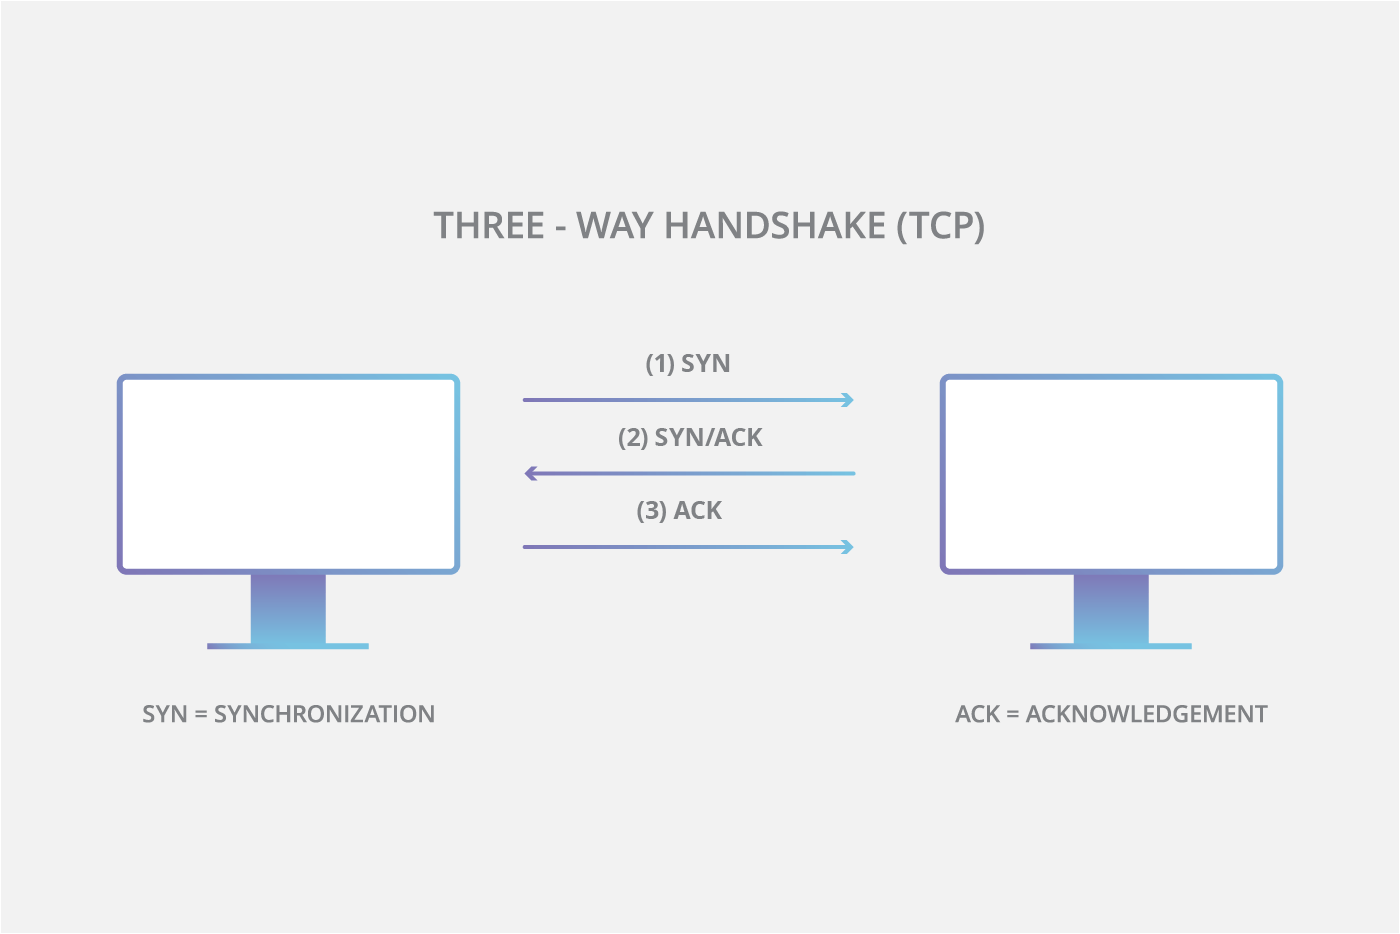 tcp three way handshake diagram stereo wire harness syn flood ddos attack cloudflare